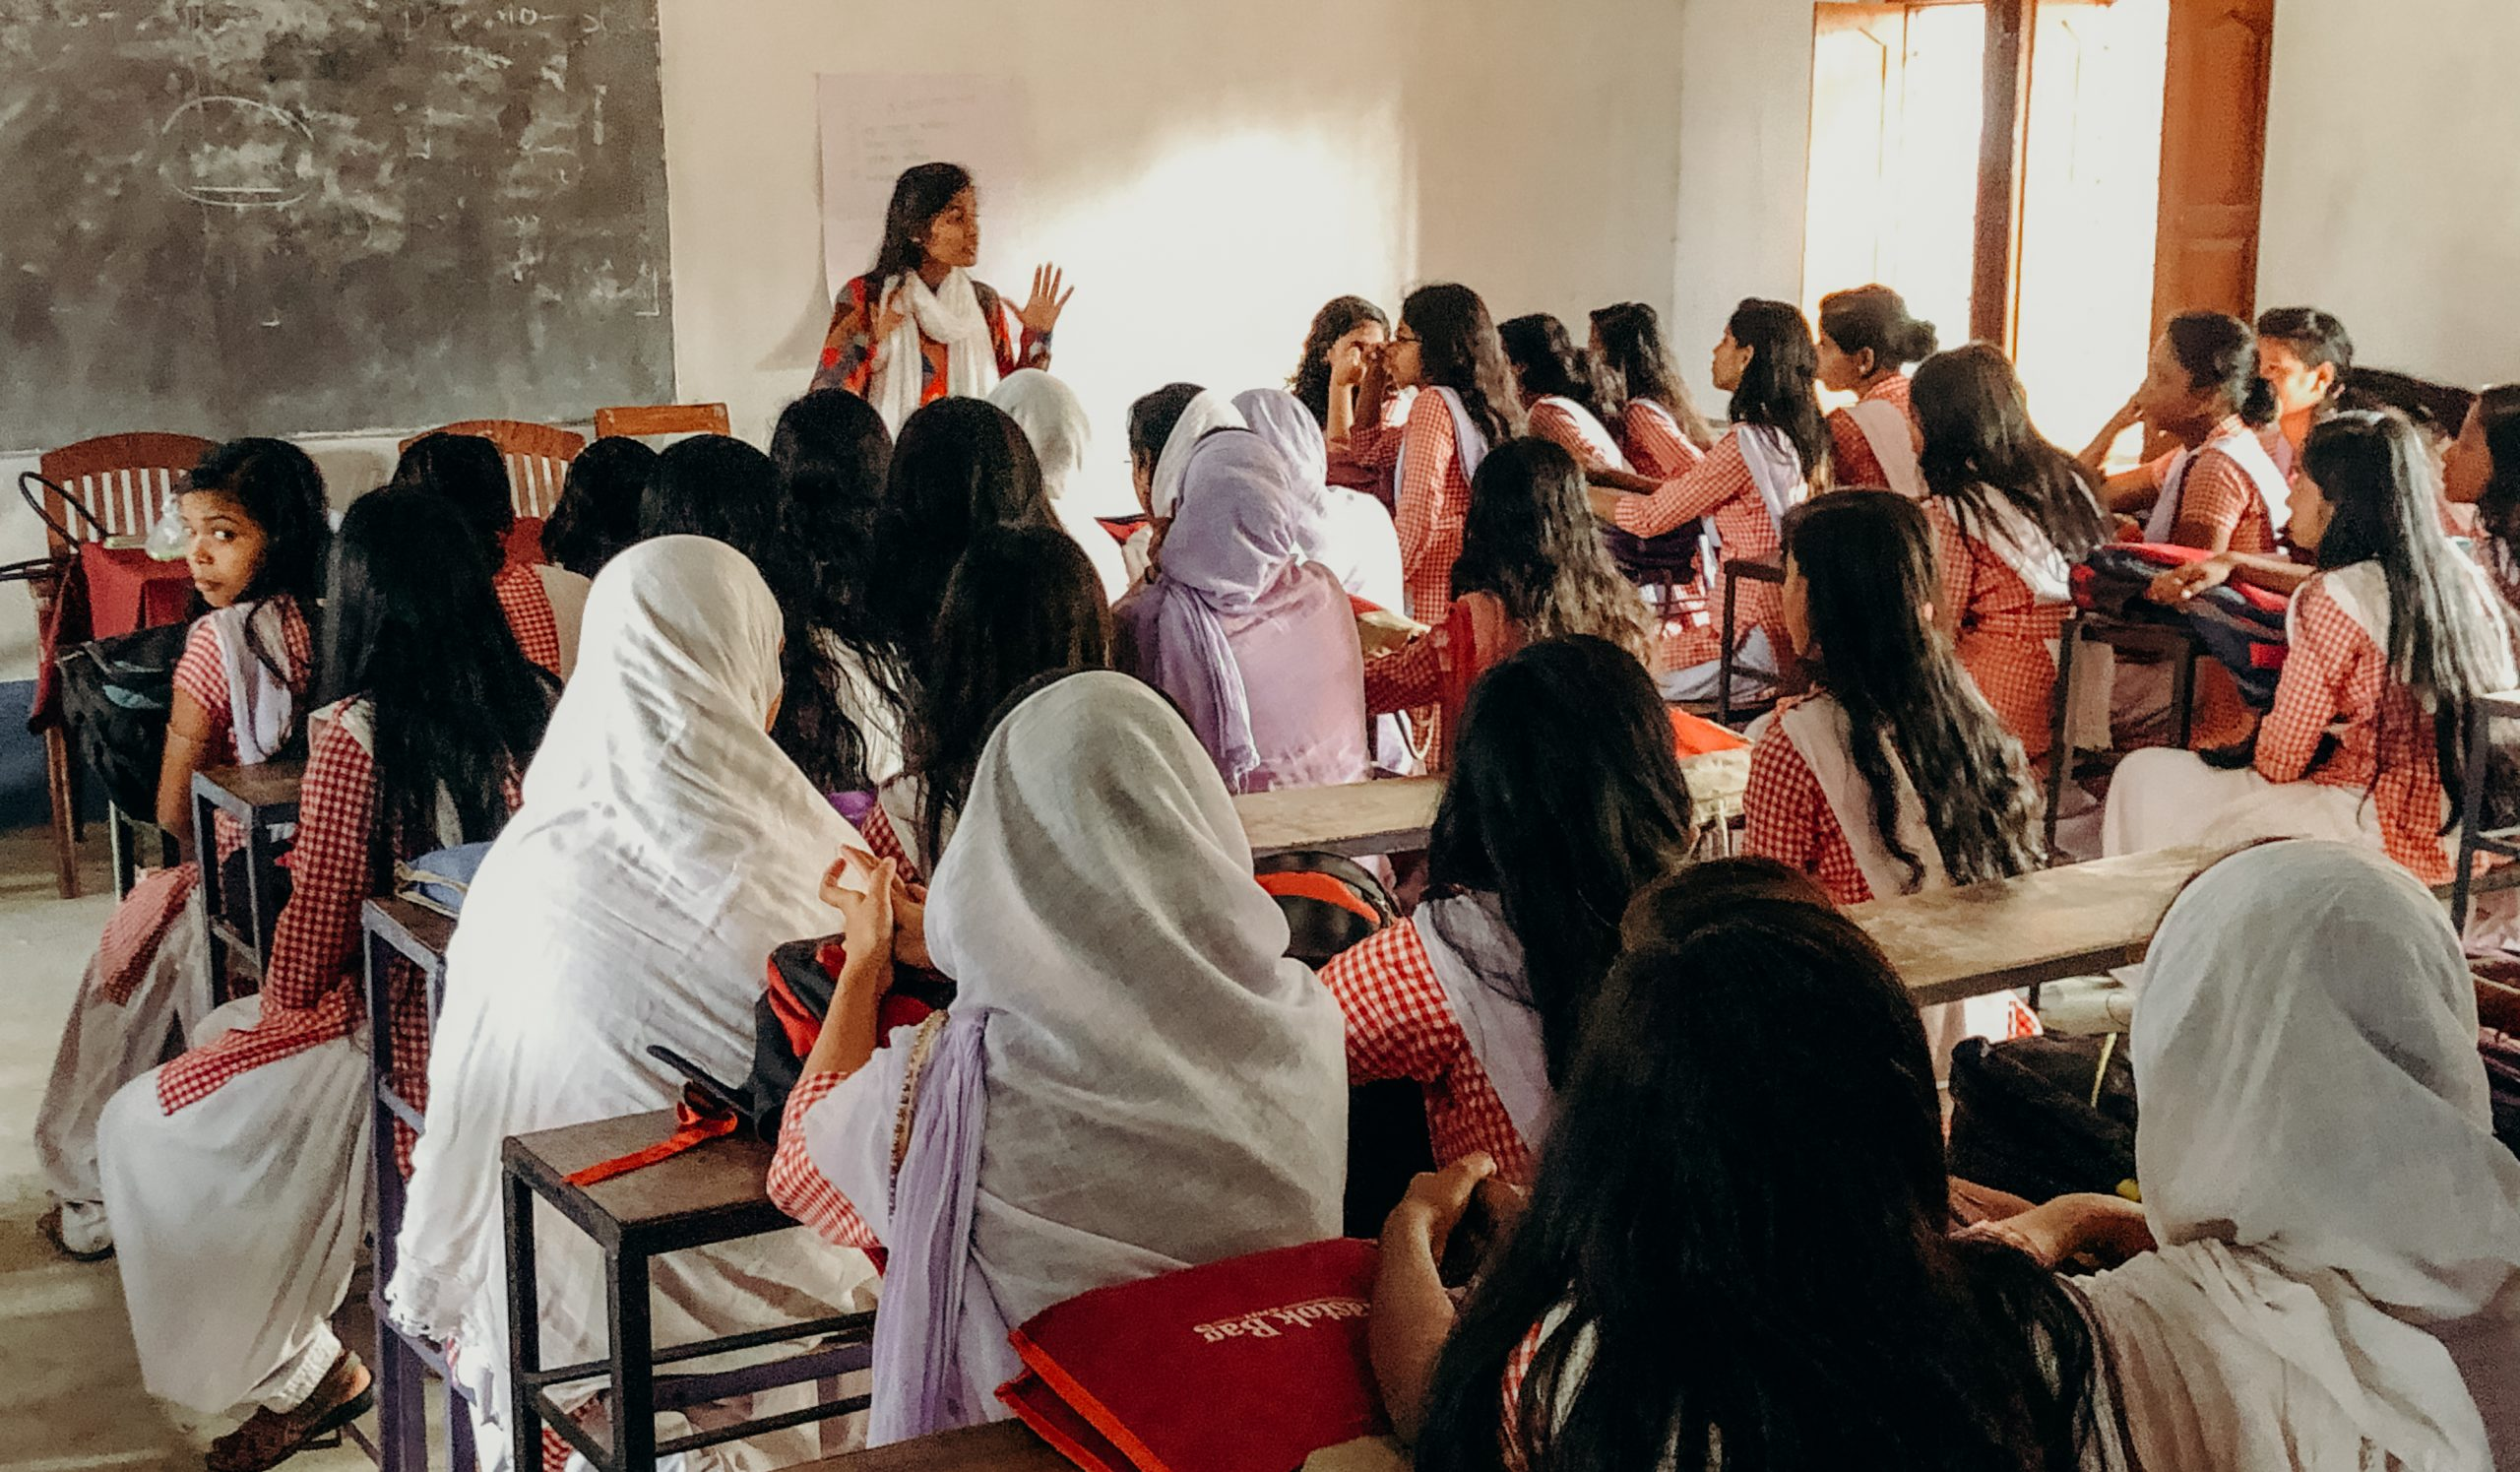 A Shadhika Scholar from the Jabala Action Research Organization hosting a community leadership workshop at a local high school, 2019